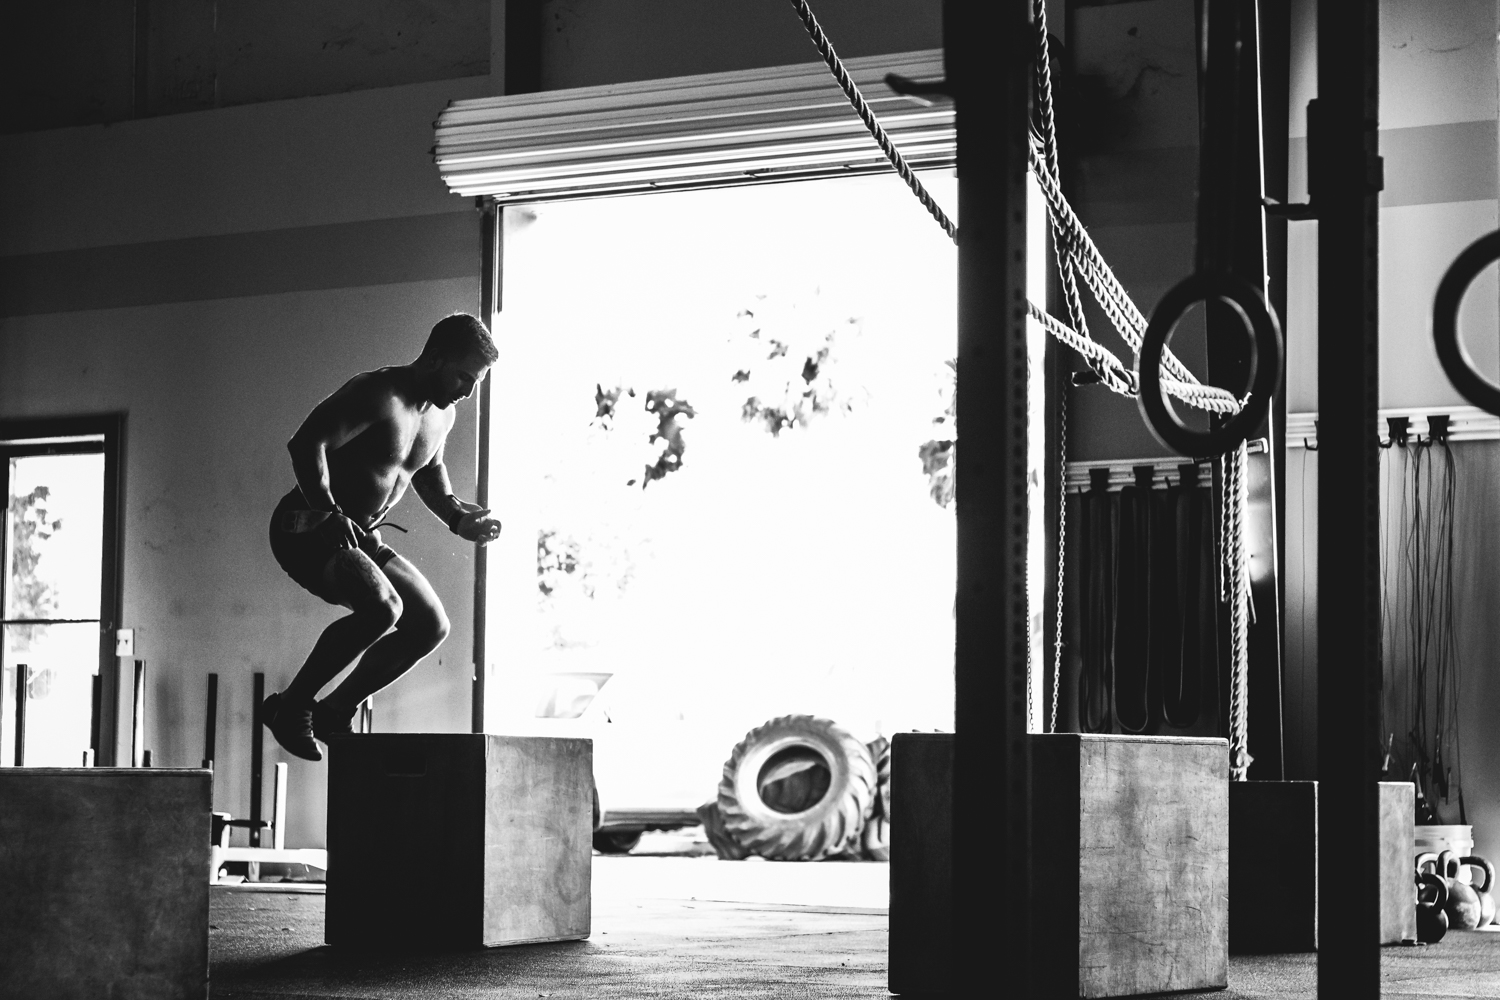 Marcello Magalhaes of Orchid Island CrossFit